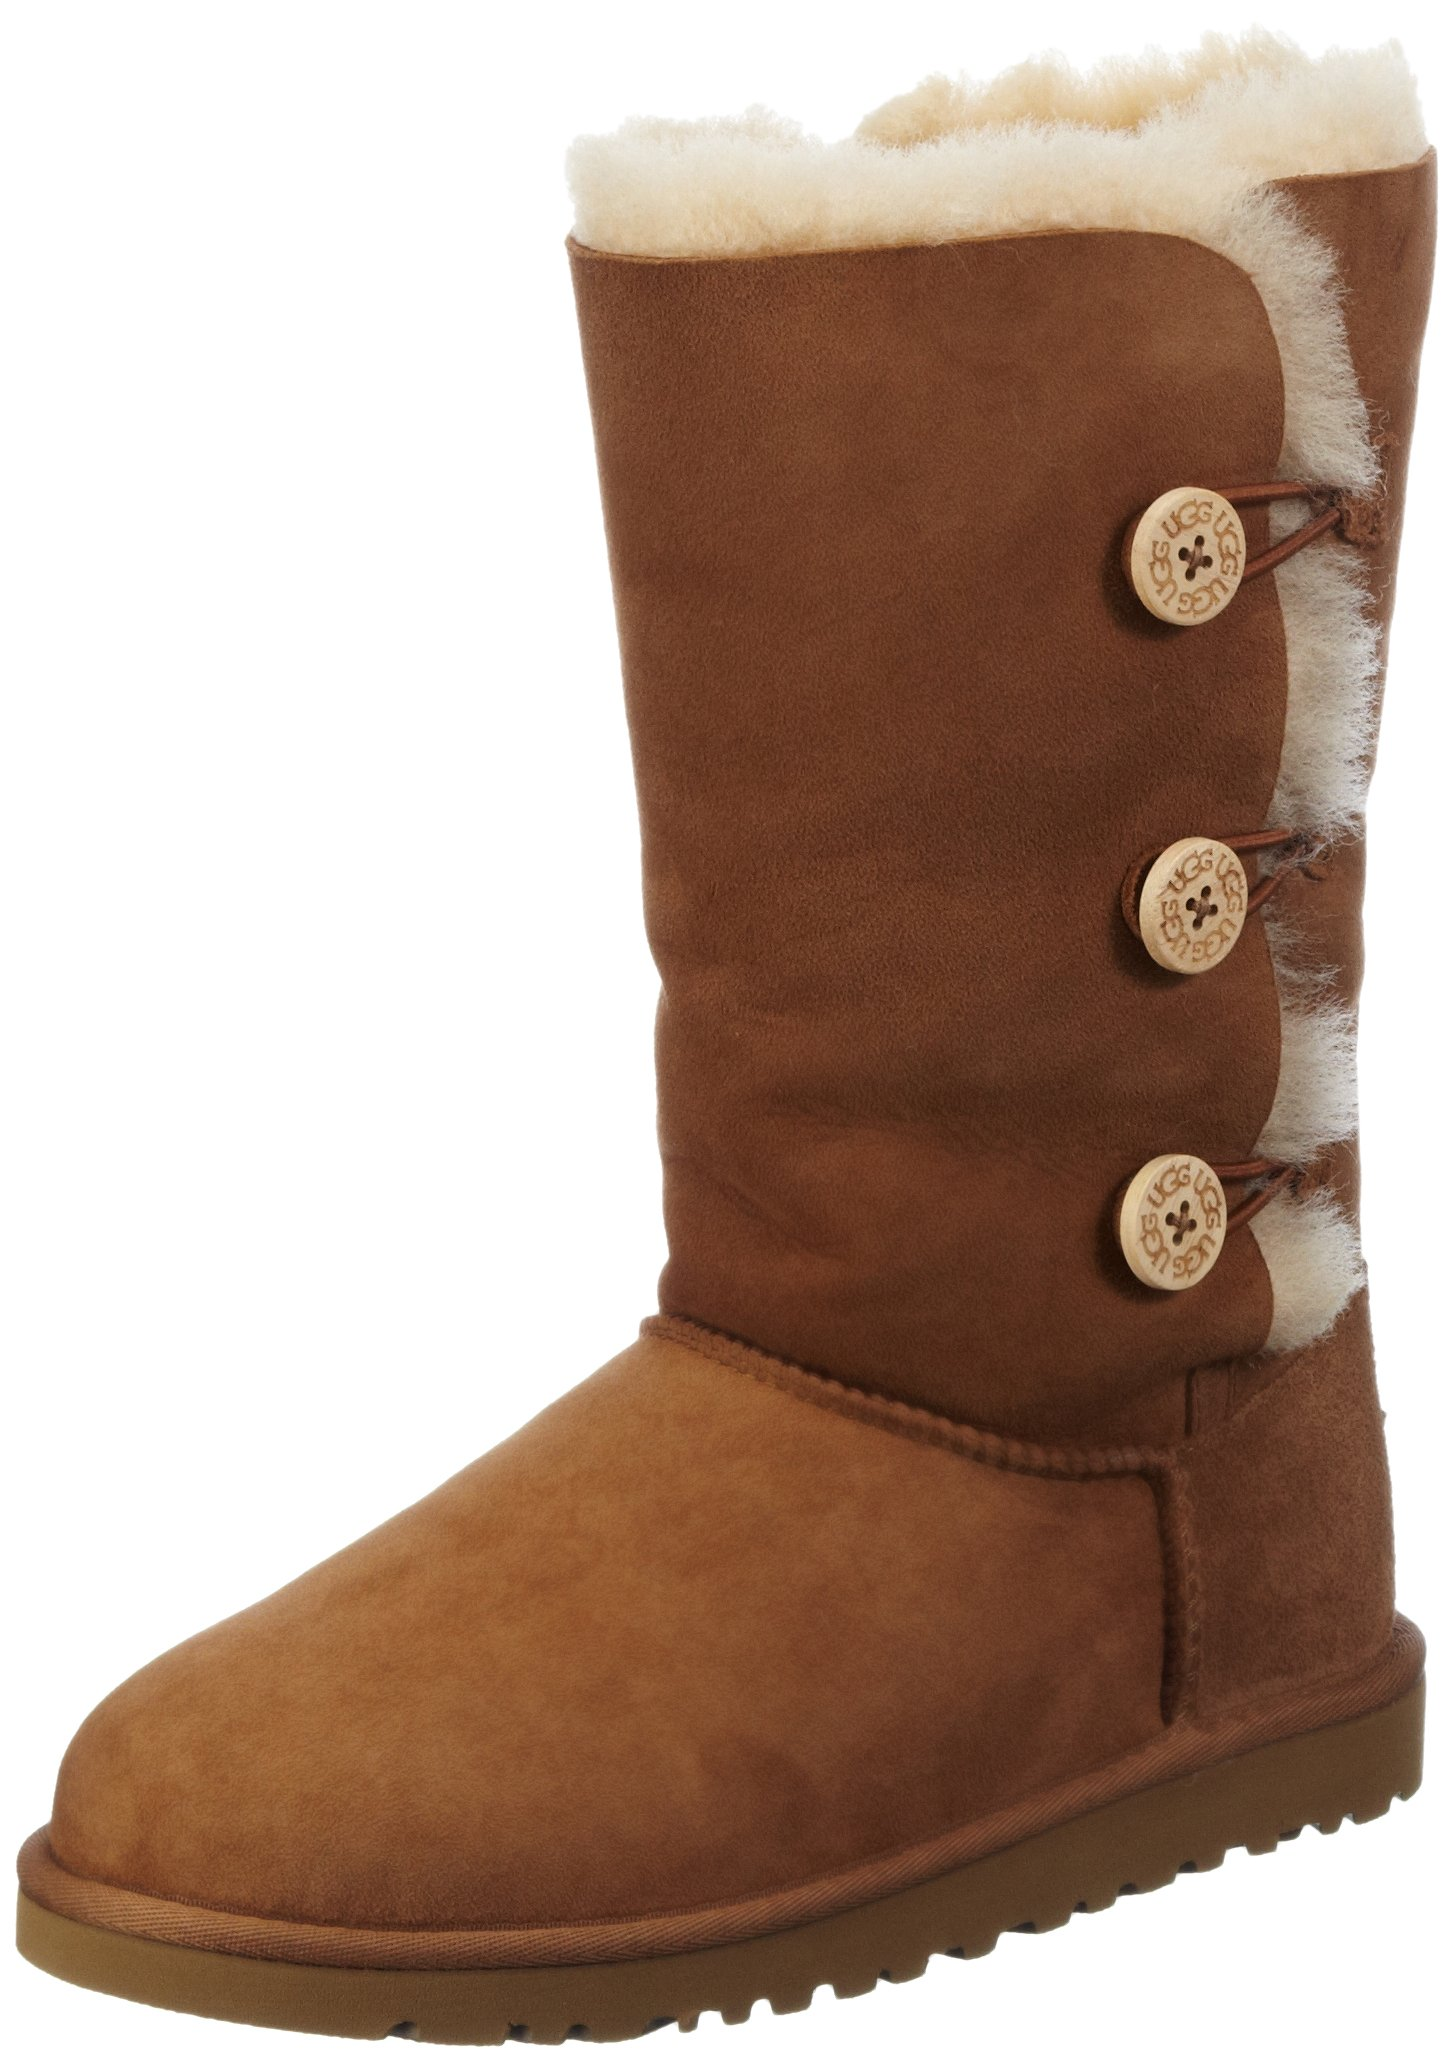 Kid's UGG Bailey Button Triplet chestnut size 4 us by UGG (Image #1)